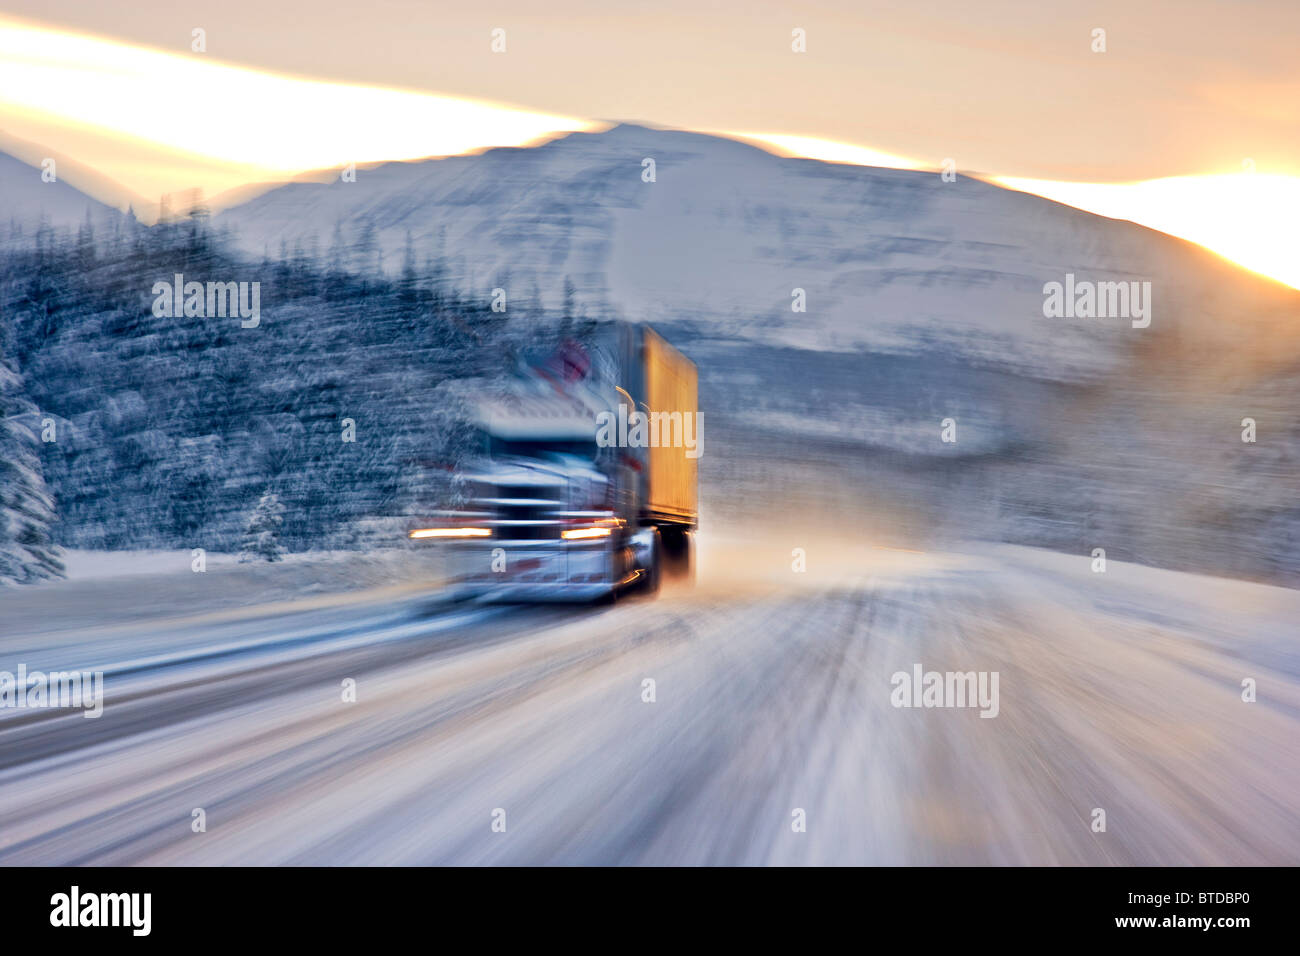 Semi truck driving on the snowcovered Seward Highway at sunrise, Southcentral Alaska, Winter Stock Photo